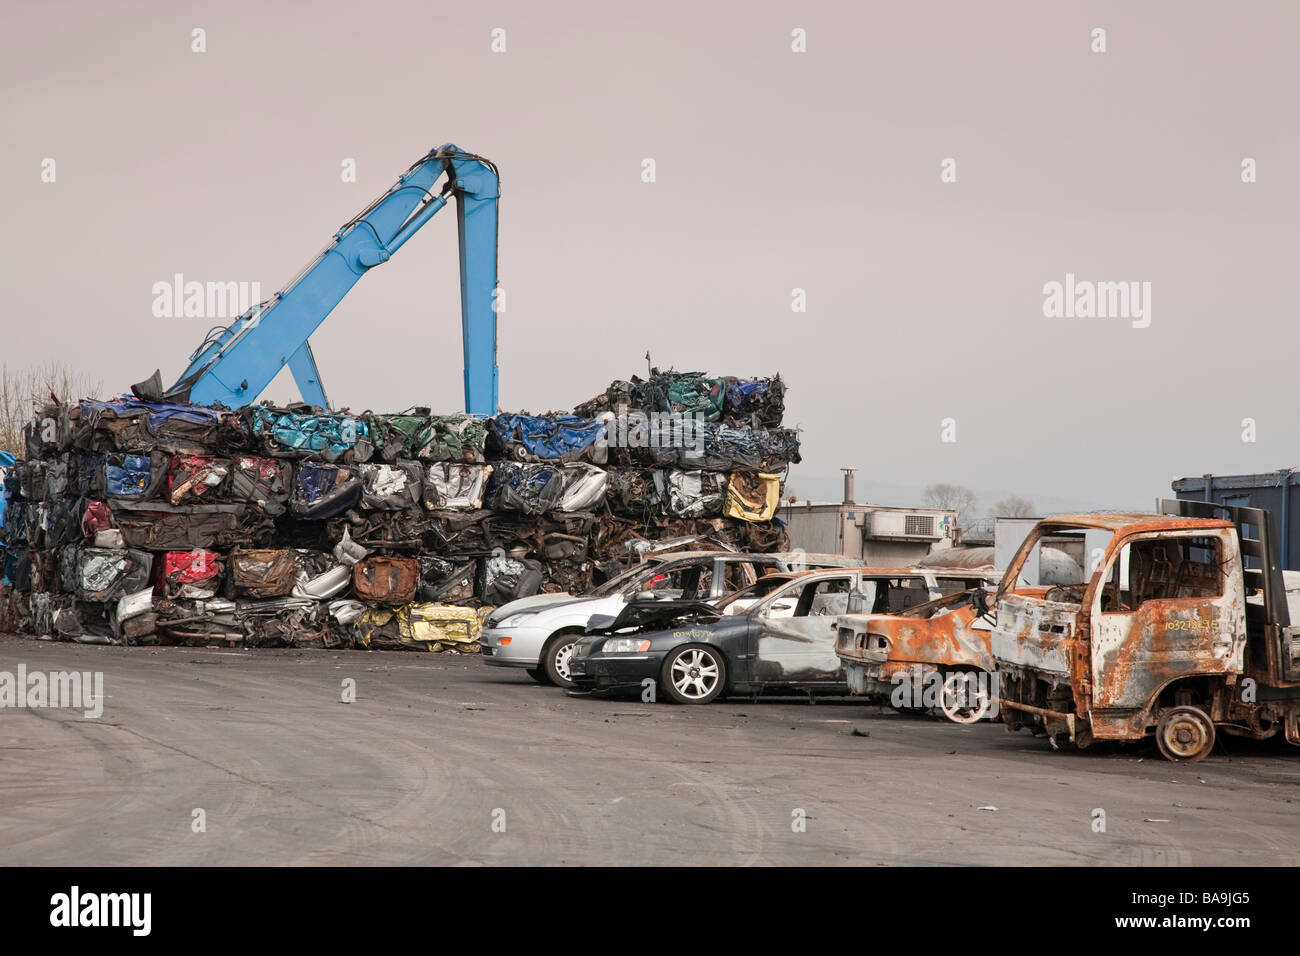 Damaged vehicles in scrapyard with pile of crushed vehicles. Stock Photo